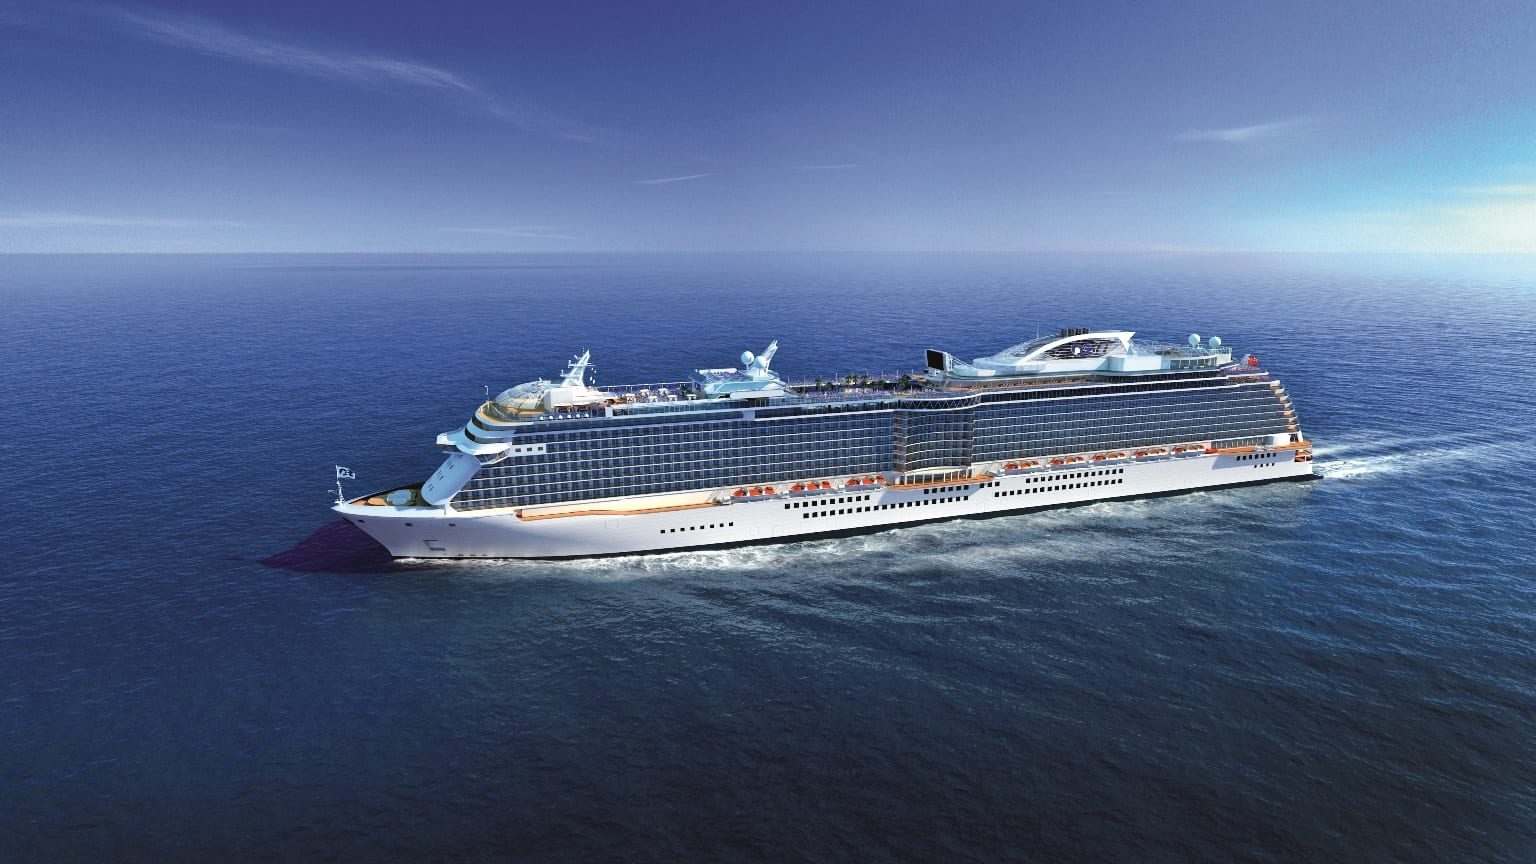 Princess Cruises Announces Two New Royal Class Ship Orders